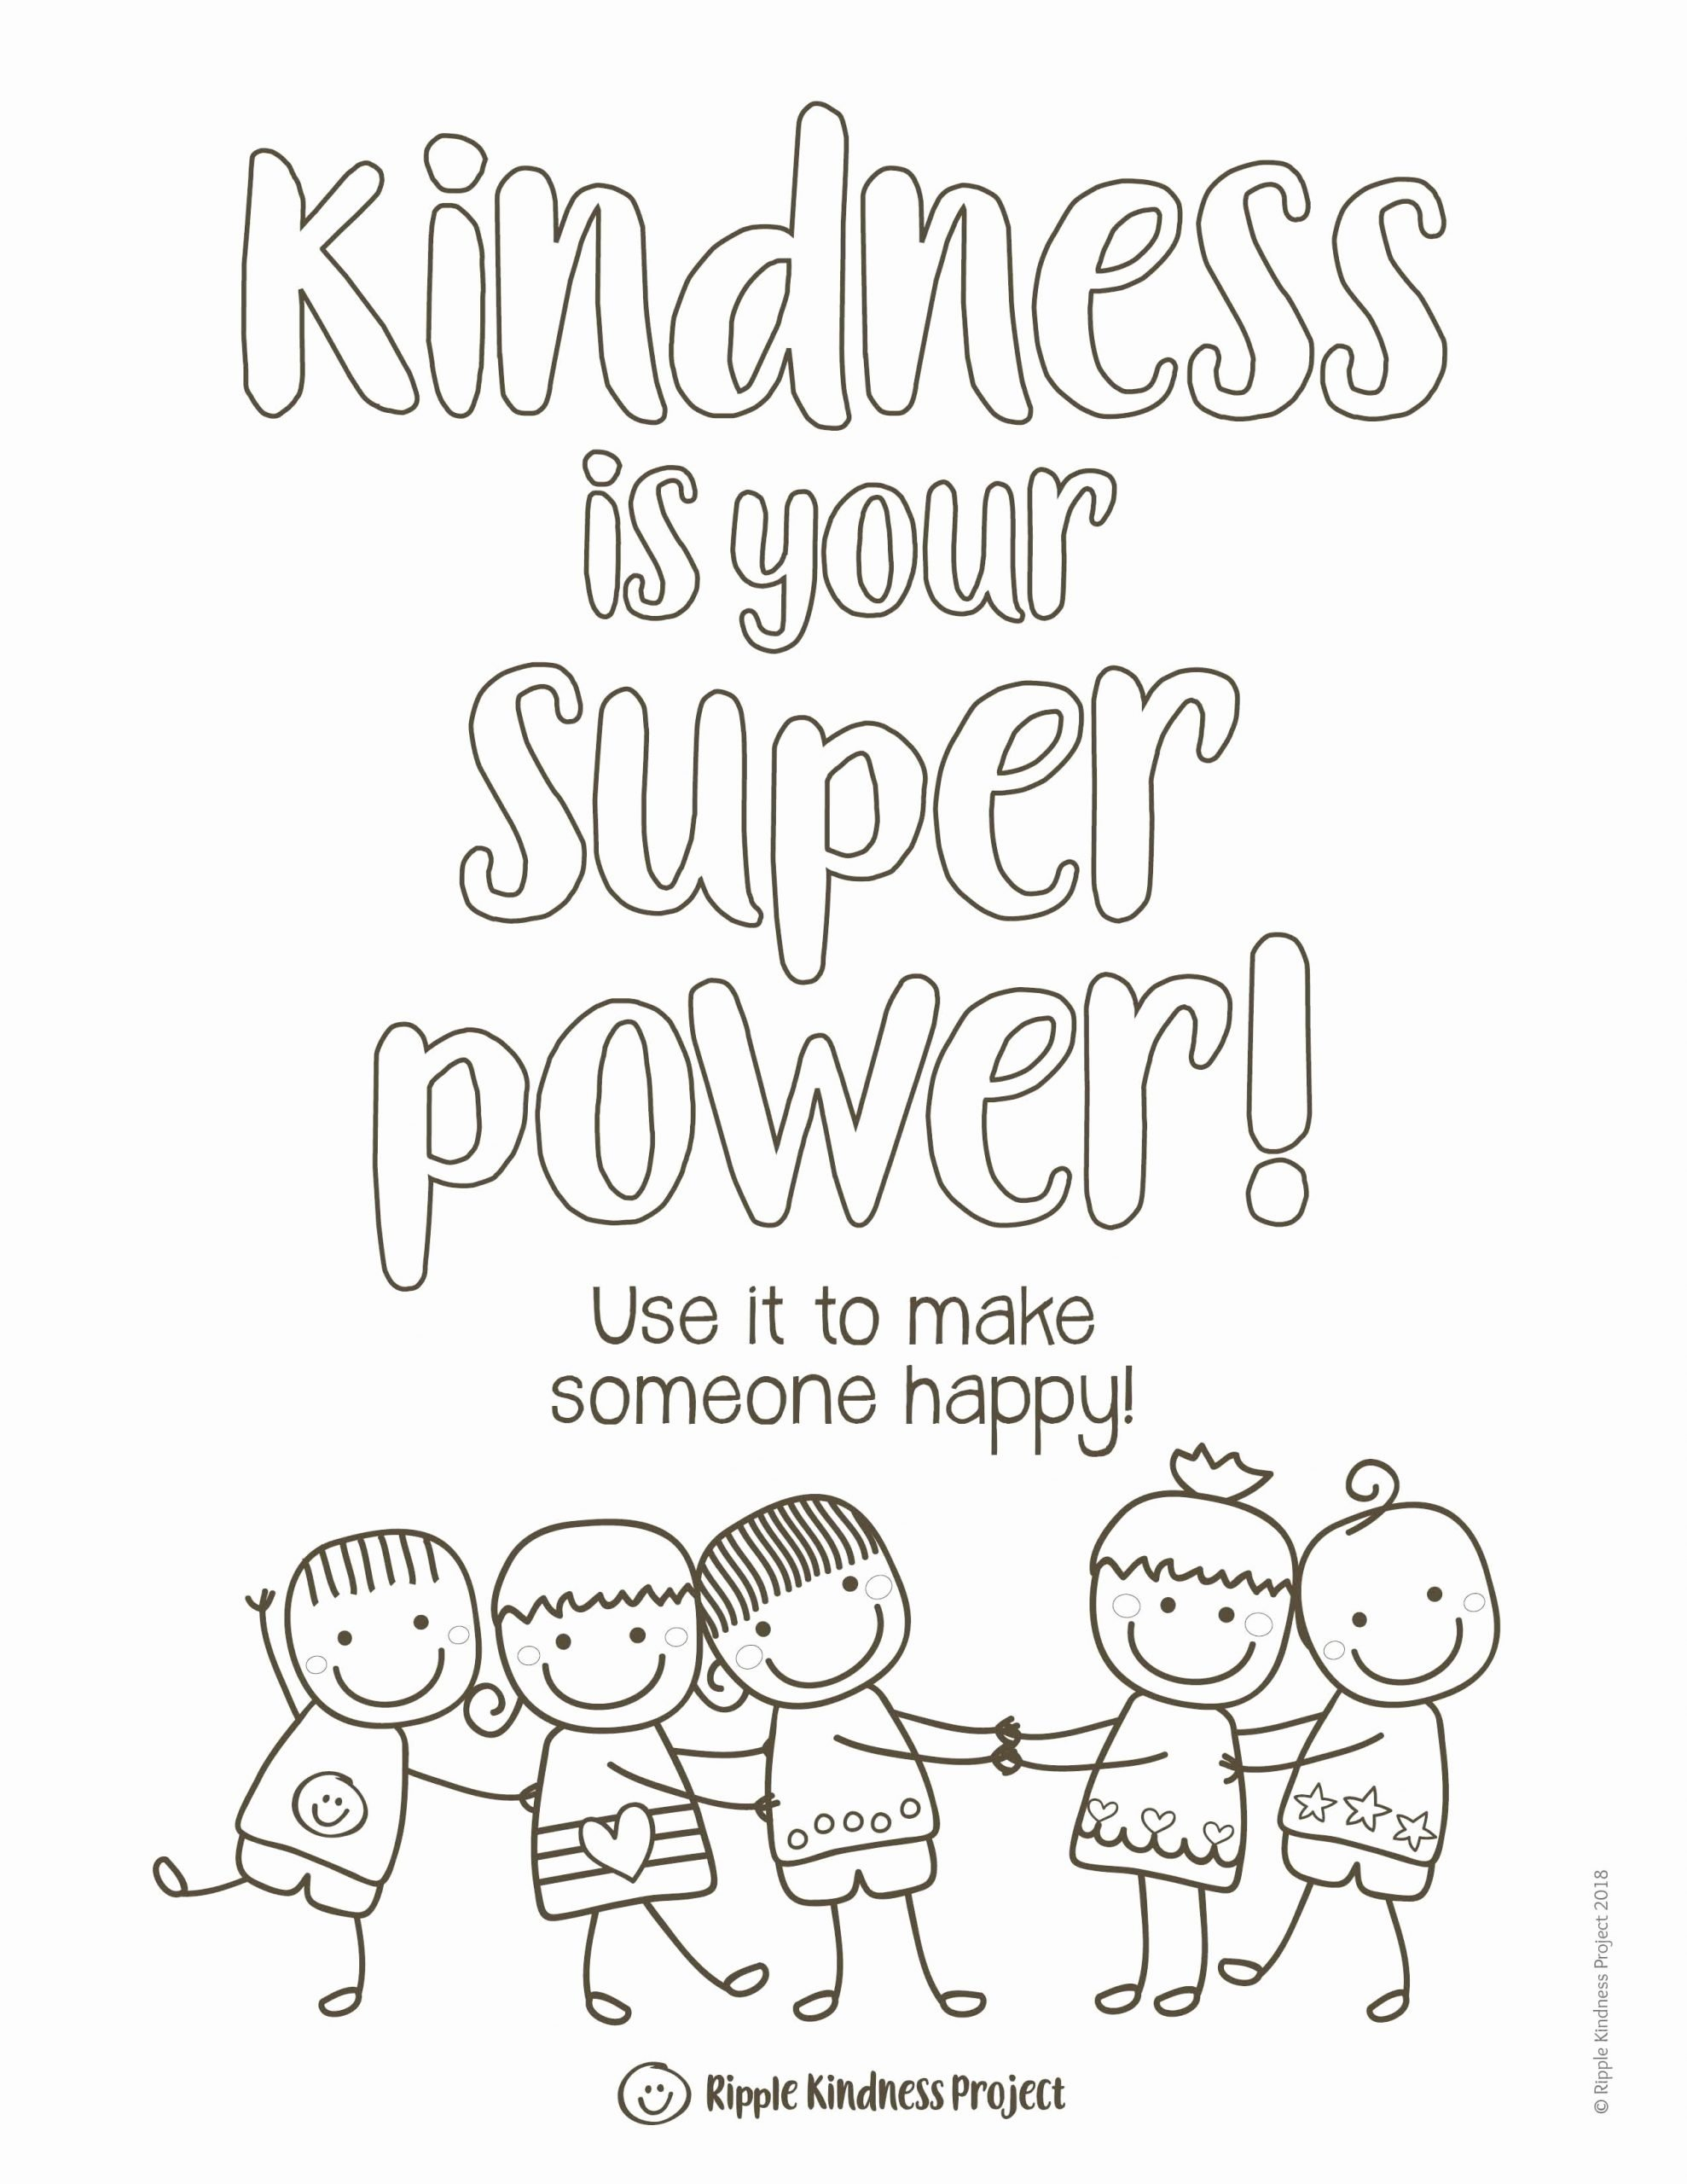 Kindness Worksheets for Elementary Students top Kindness Coloring Pages Kindness Activities Kindness